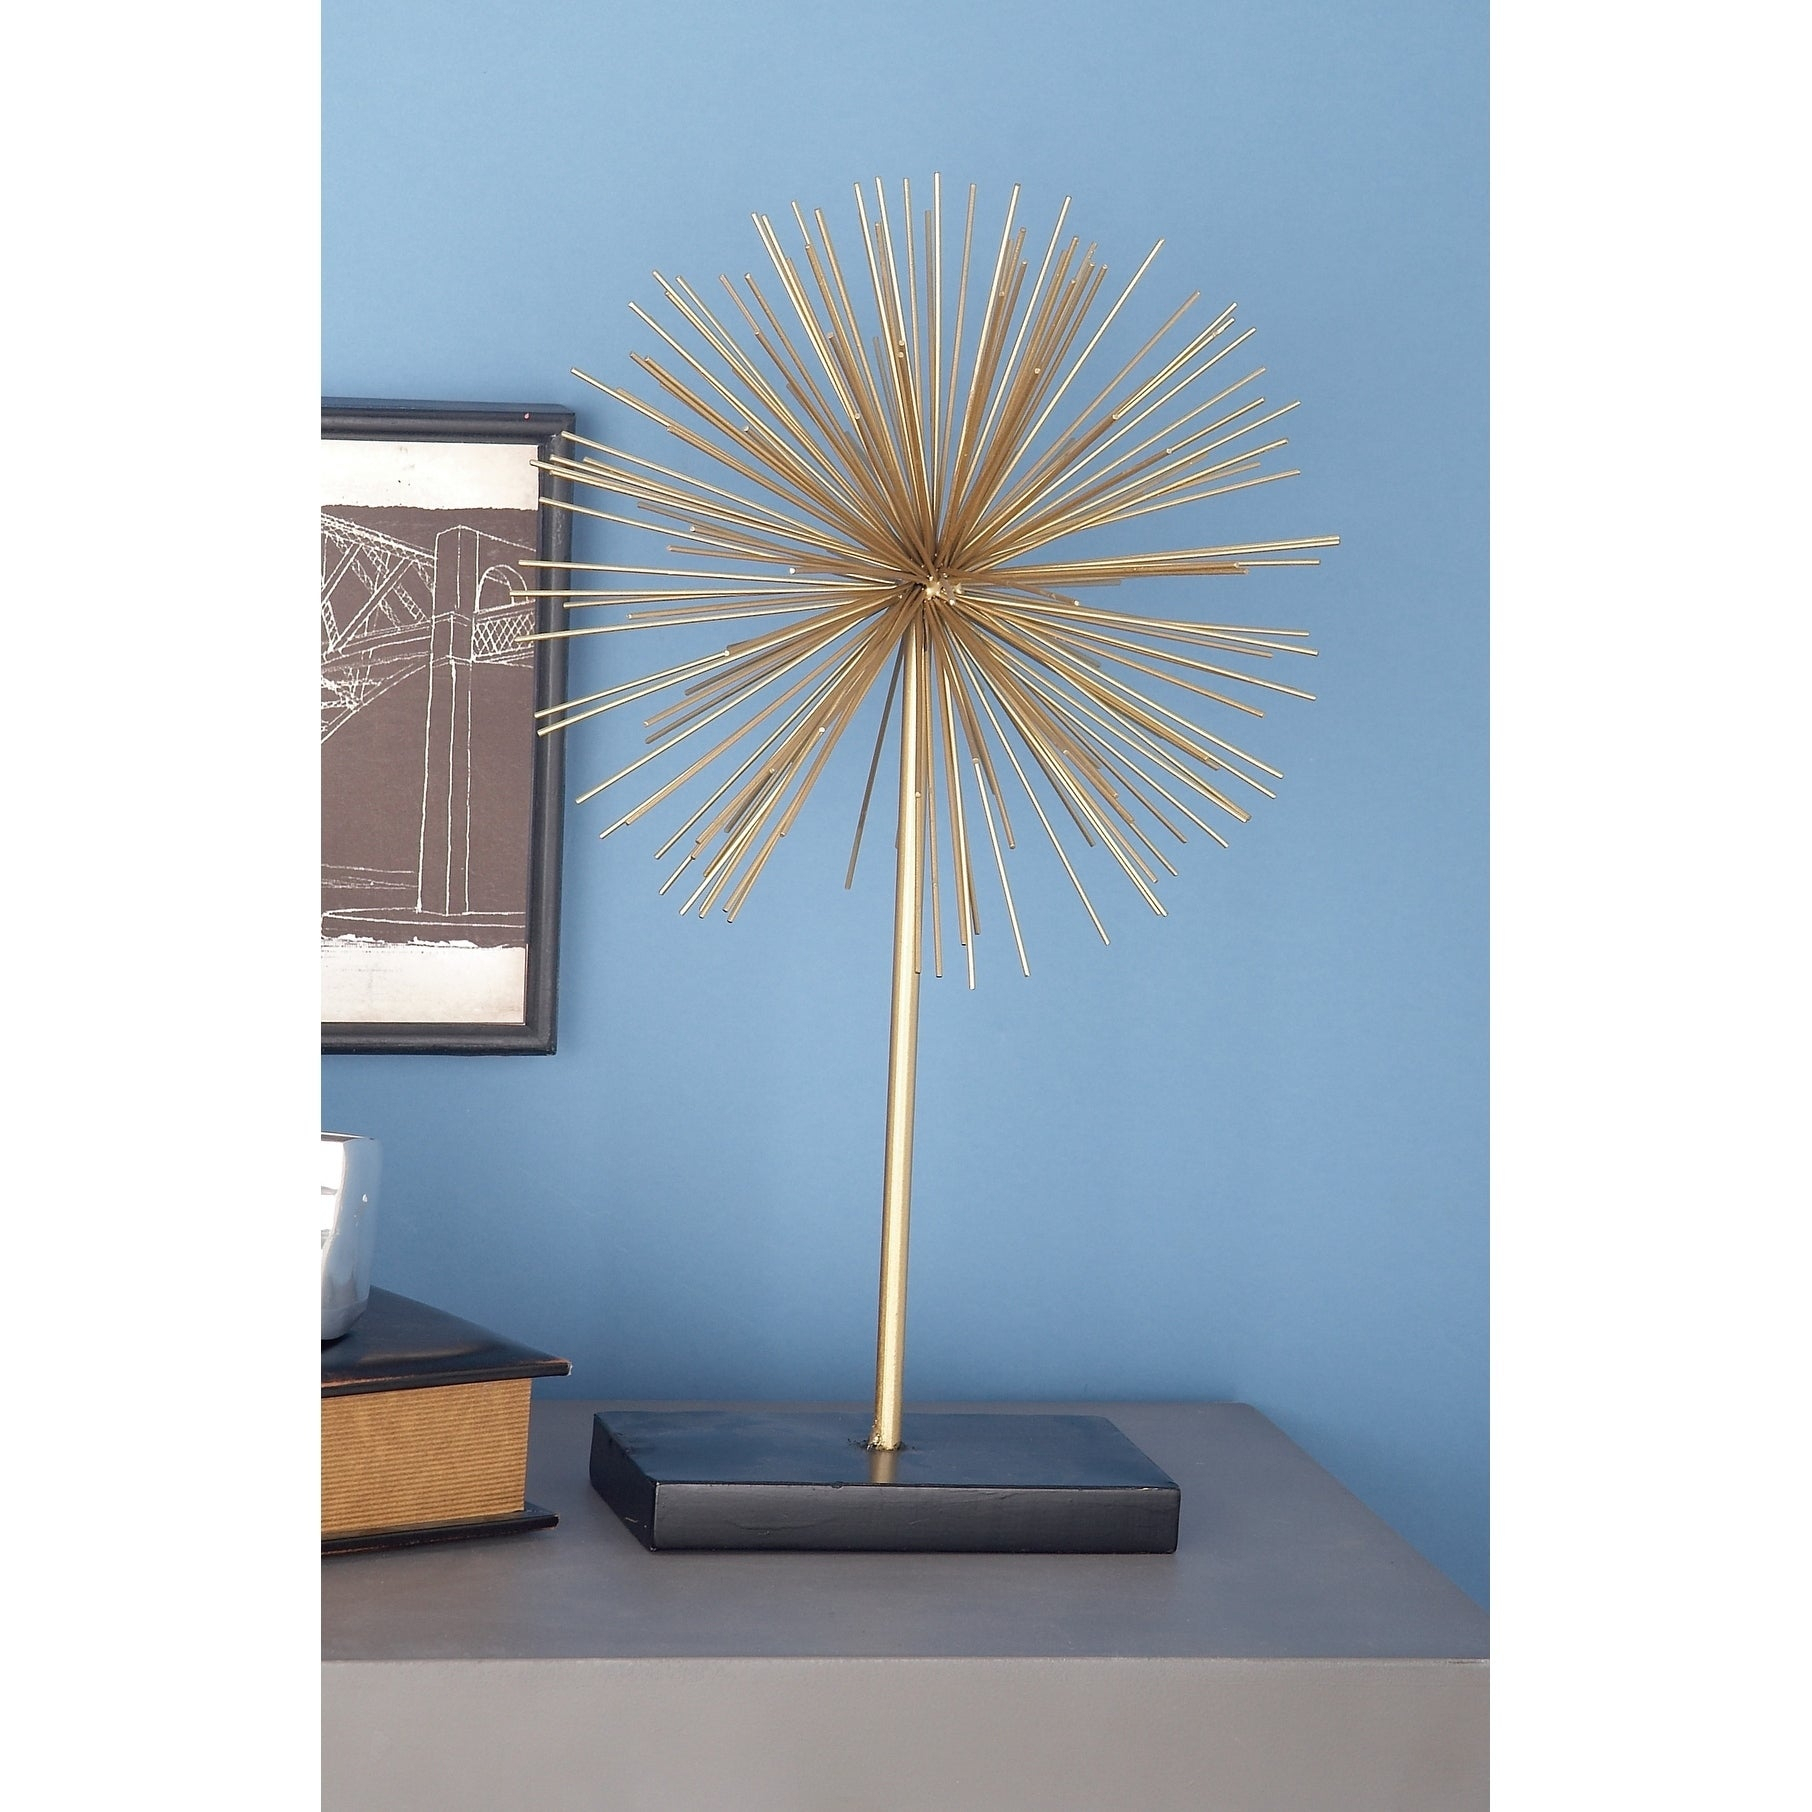 "Tall Contemporary Style 3d Round Gold Metal Starburst Sculptures On Black Stands Set Of 3 – 11"", 15"", 20"" Throughout Set Of 3 Contemporary 6, 9, And 11 Inch Gold Tin Starburst Sculptures (View 7 of 30)"